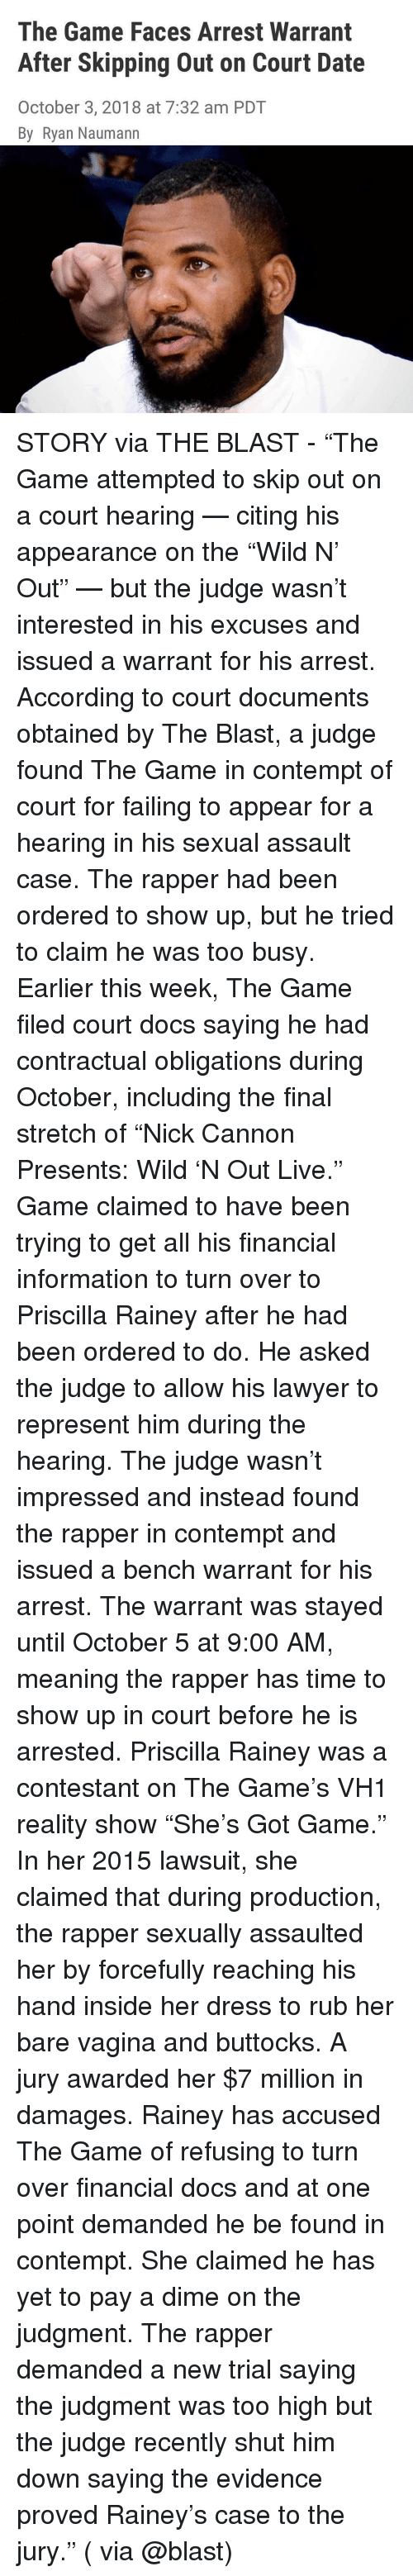 "Lawyer, Memes, and The Game: The Game Faces Arrest Warrant  After Skipping Out on Court Date  October 3, 2018 at 7:32 am PDT  By Ryan Naumann STORY via THE BLAST - ""The Game attempted to skip out on a court hearing — citing his appearance on the ""Wild N' Out"" — but the judge wasn't interested in his excuses and issued a warrant for his arrest. According to court documents obtained by The Blast, a judge found The Game in contempt of court for failing to appear for a hearing in his sexual assault case. The rapper had been ordered to show up, but he tried to claim he was too busy. Earlier this week, The Game filed court docs saying he had contractual obligations during October, including the final stretch of ""Nick Cannon Presents: Wild 'N Out Live."" Game claimed to have been trying to get all his financial information to turn over to Priscilla Rainey after he had been ordered to do. He asked the judge to allow his lawyer to represent him during the hearing. The judge wasn't impressed and instead found the rapper in contempt and issued a bench warrant for his arrest. The warrant was stayed until October 5 at 9:00 AM, meaning the rapper has time to show up in court before he is arrested. Priscilla Rainey was a contestant on The Game's VH1 reality show ""She's Got Game."" In her 2015 lawsuit, she claimed that during production, the rapper sexually assaulted her by forcefully reaching his hand inside her dress to rub her bare vagina and buttocks. A jury awarded her $7 million in damages. Rainey has accused The Game of refusing to turn over financial docs and at one point demanded he be found in contempt. She claimed he has yet to pay a dime on the judgment. The rapper demanded a new trial saying the judgment was too high but the judge recently shut him down saying the evidence proved Rainey's case to the jury."" ( via @blast)"